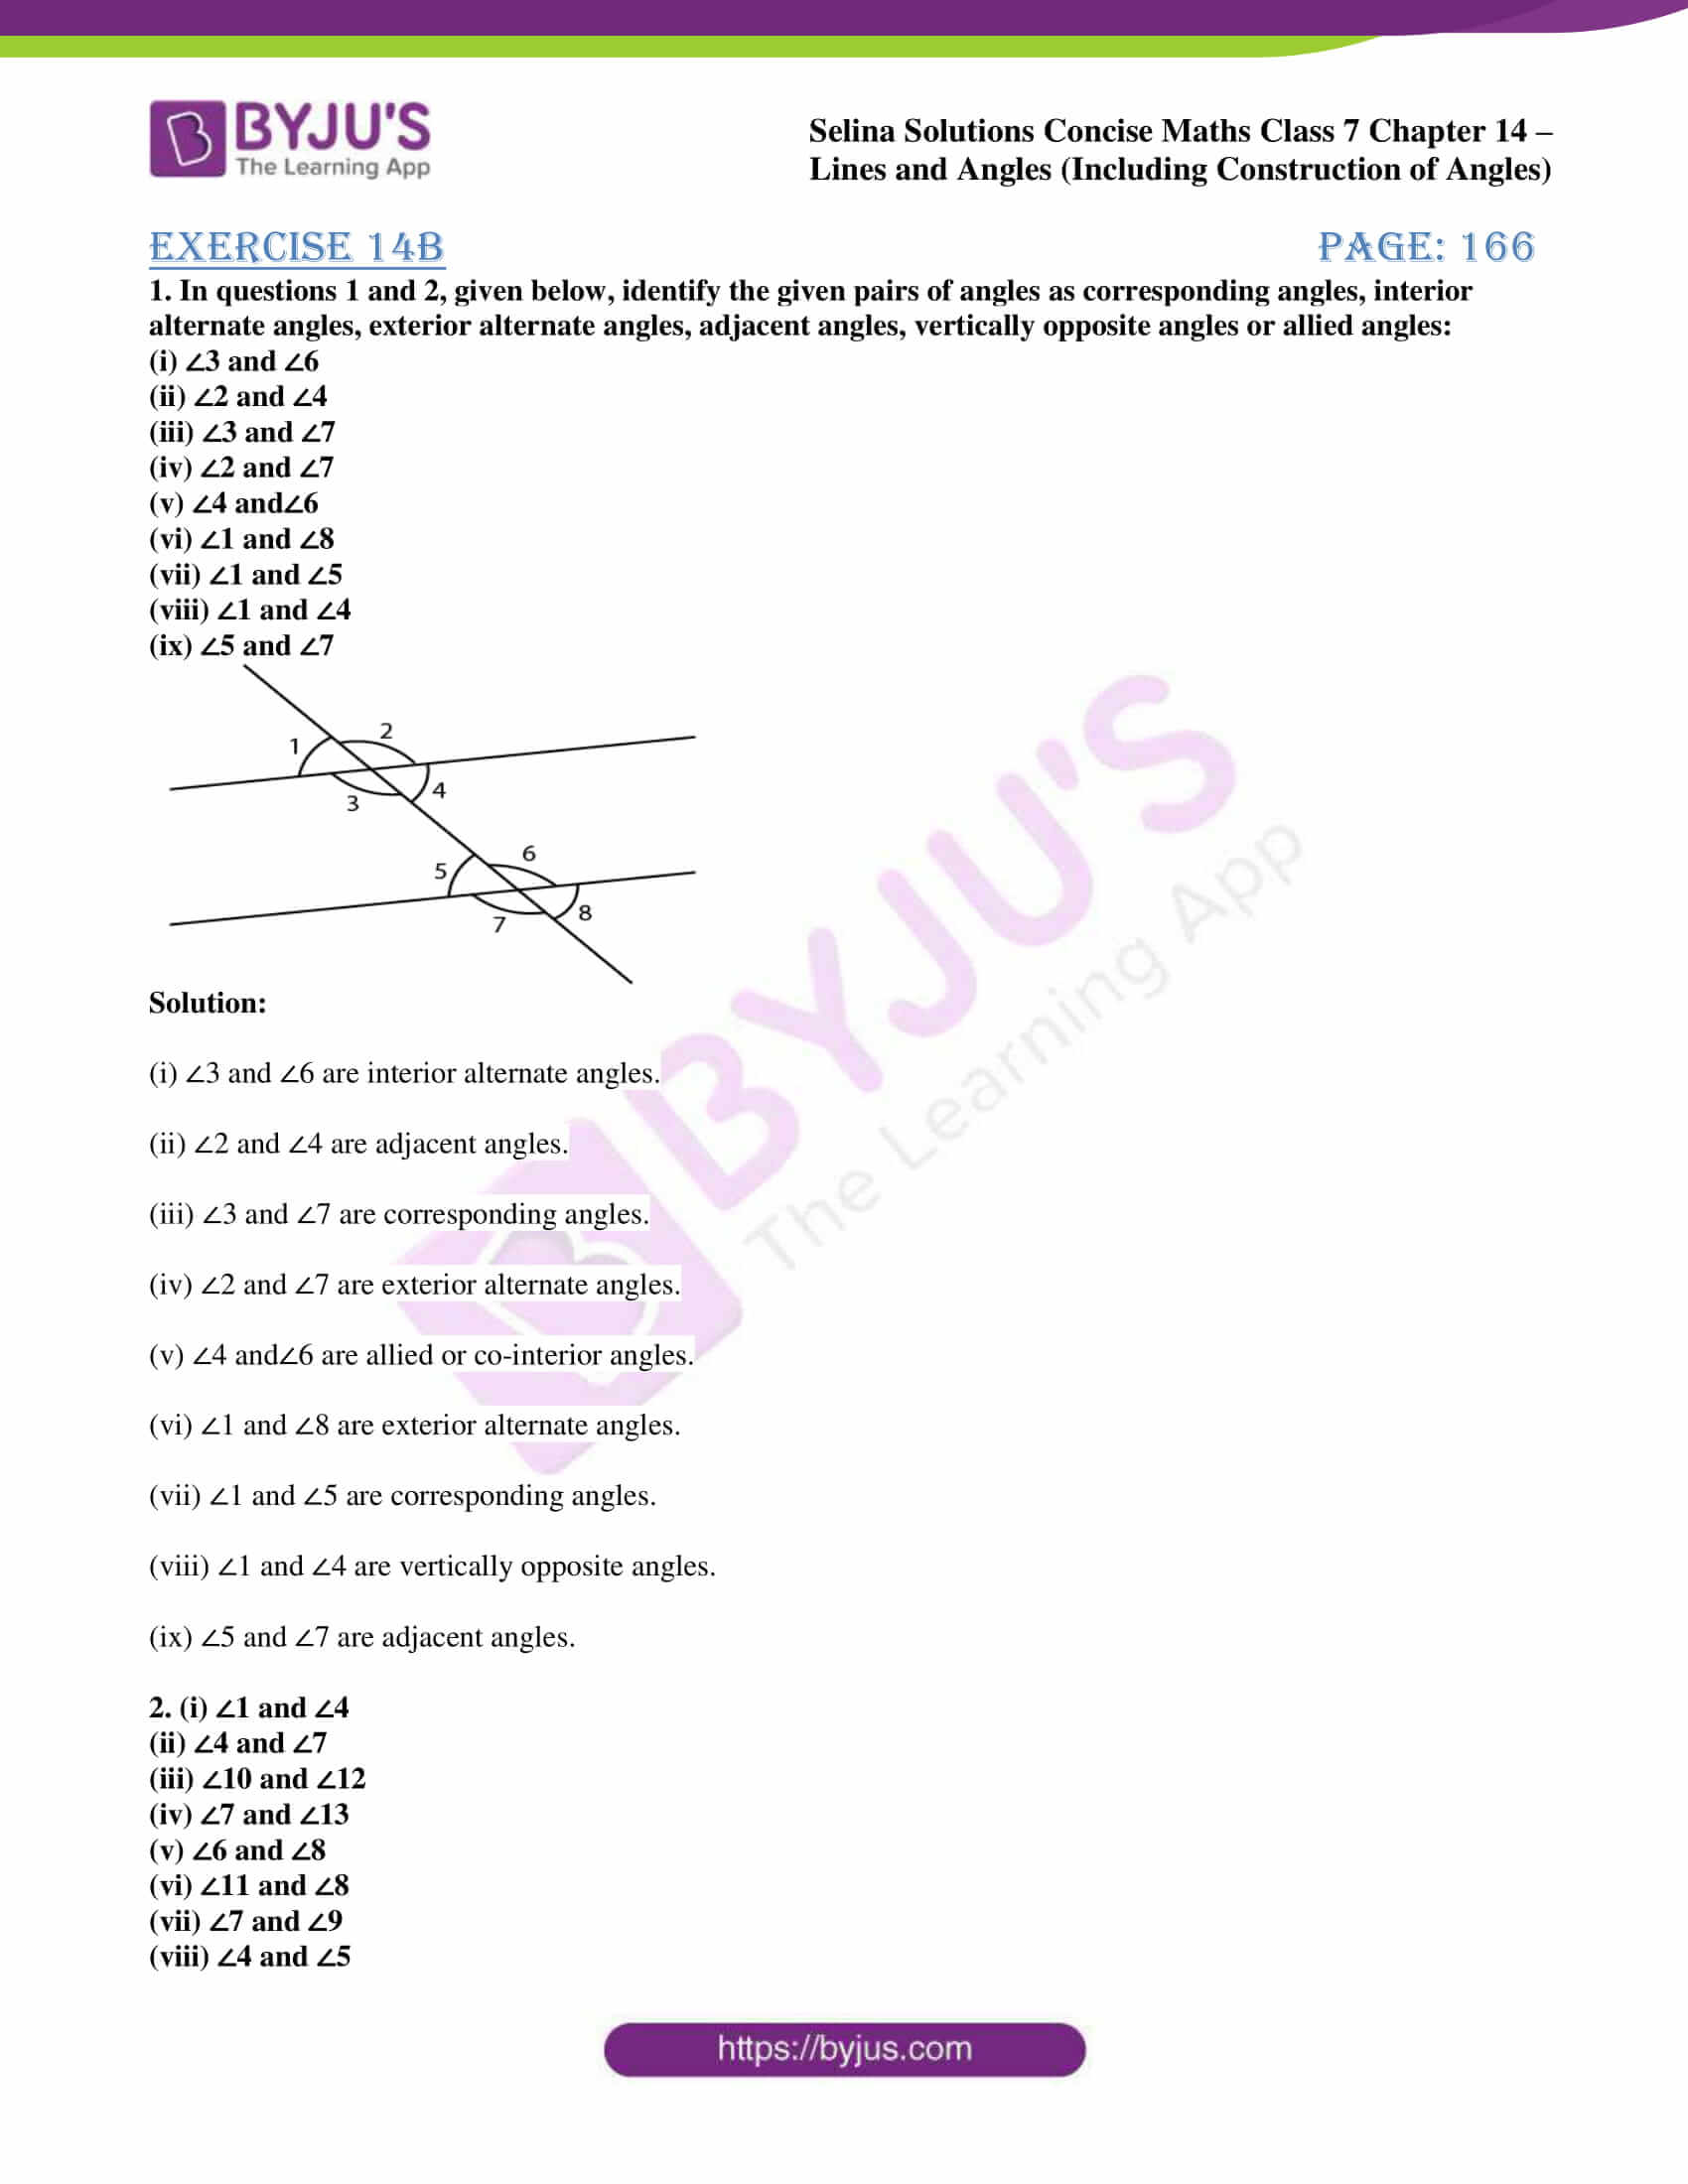 selina solution concise maths class 7 ch 14b 01